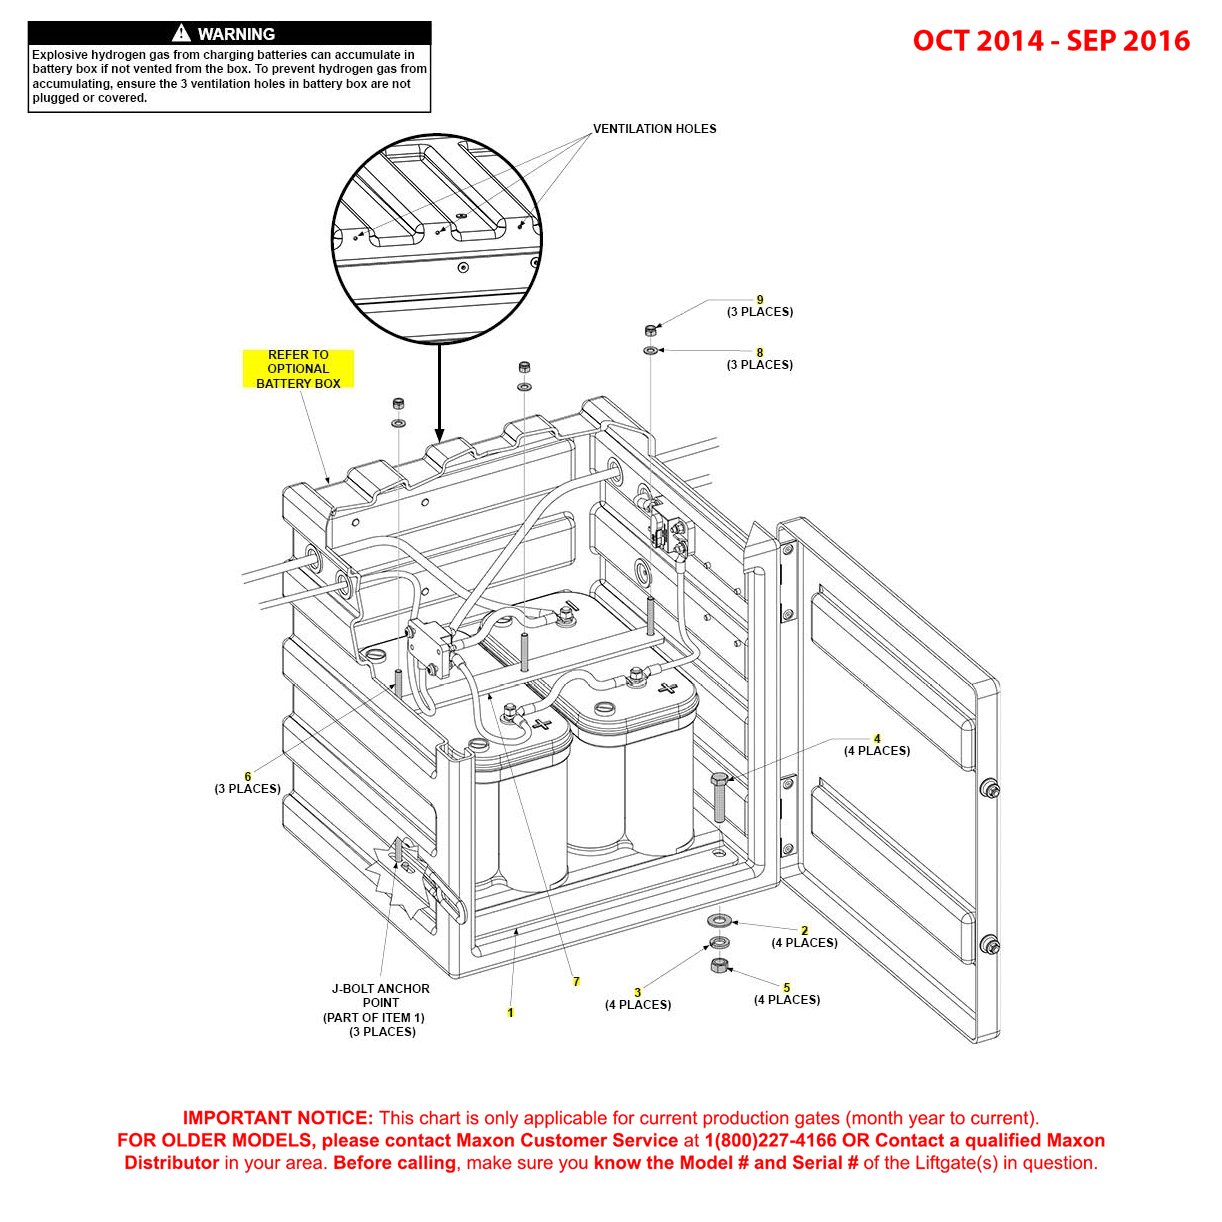 BMR (Oct 2014 - Sep 2016) Optional Battery Box Assembly Diagram